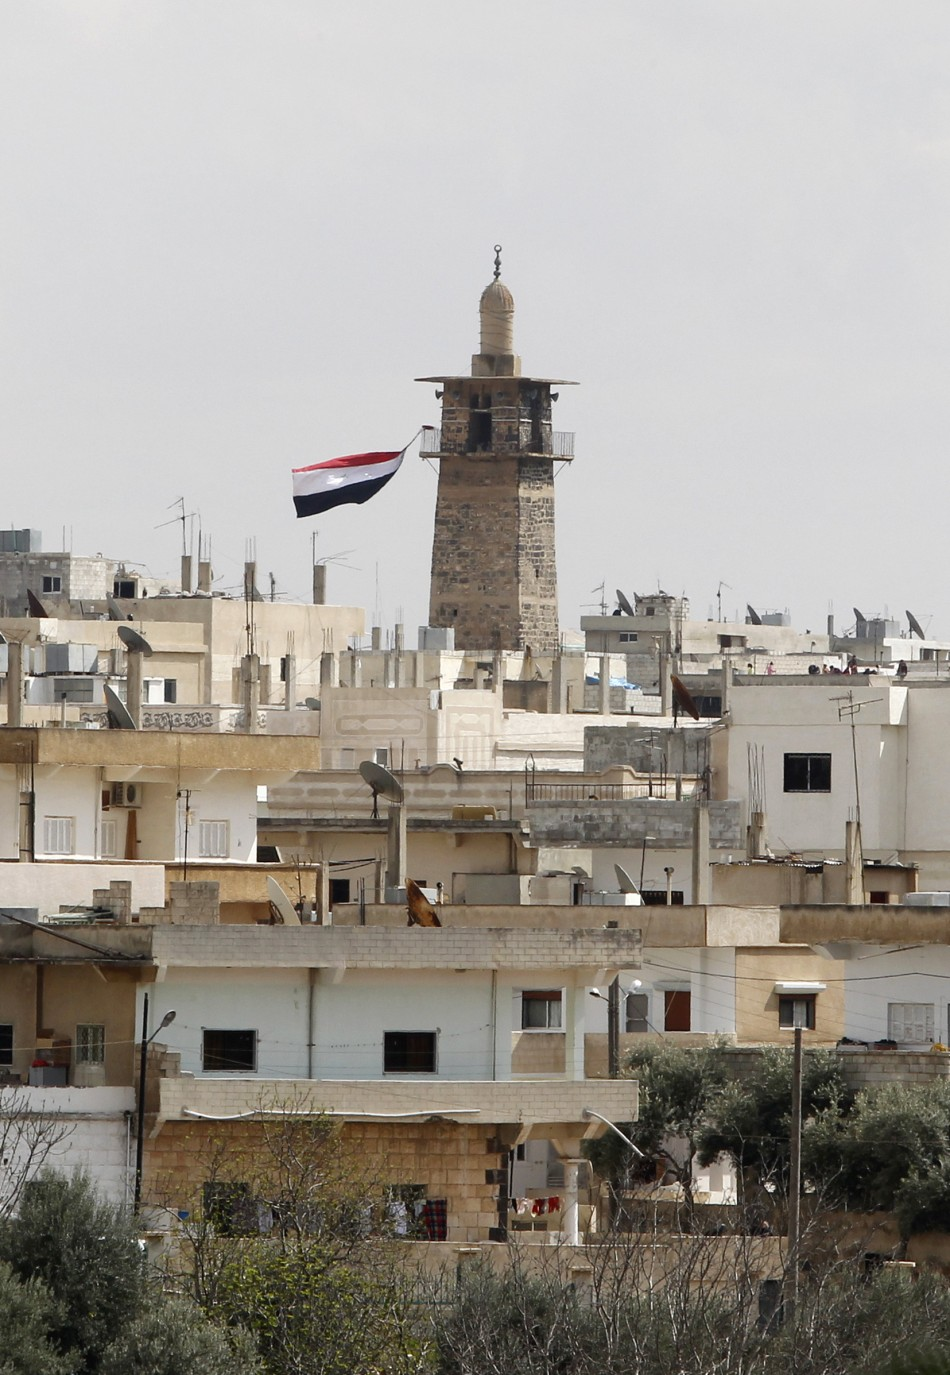 A Syrian flag flutters from the minaret of Omari mosque at the old city of Deraa March 22, 2011.